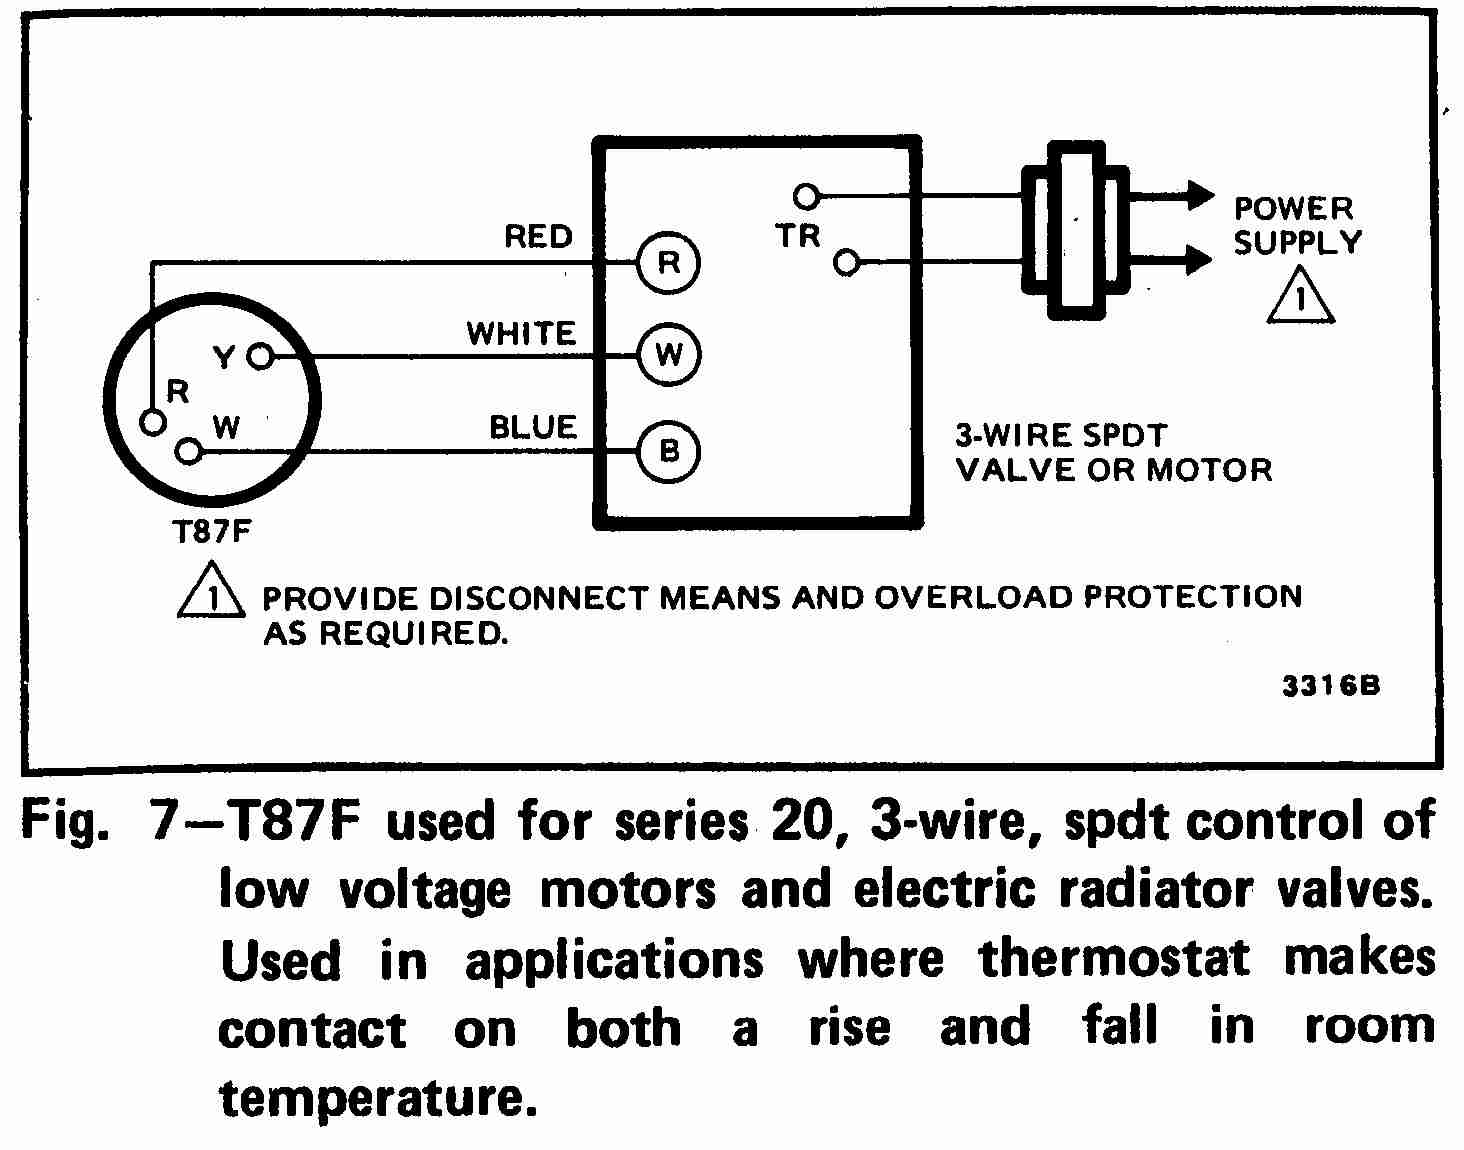 TT_T87F_0002_3W2_DJF room thermostat wiring diagrams for hvac systems fcu wiring diagram at virtualis.co